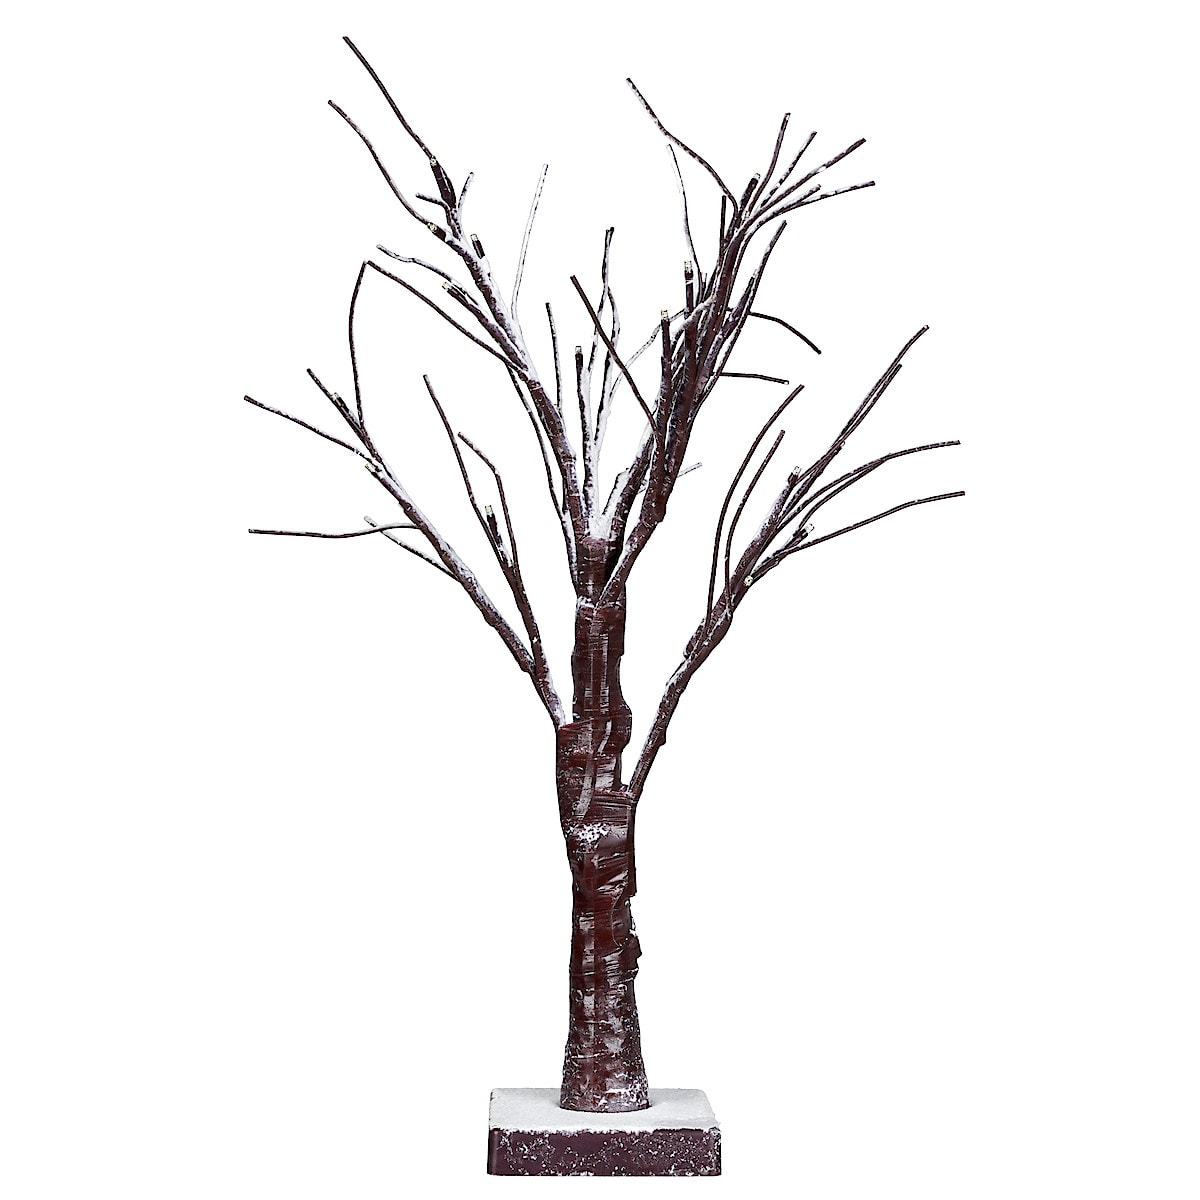 50 cm battery operated LED tree